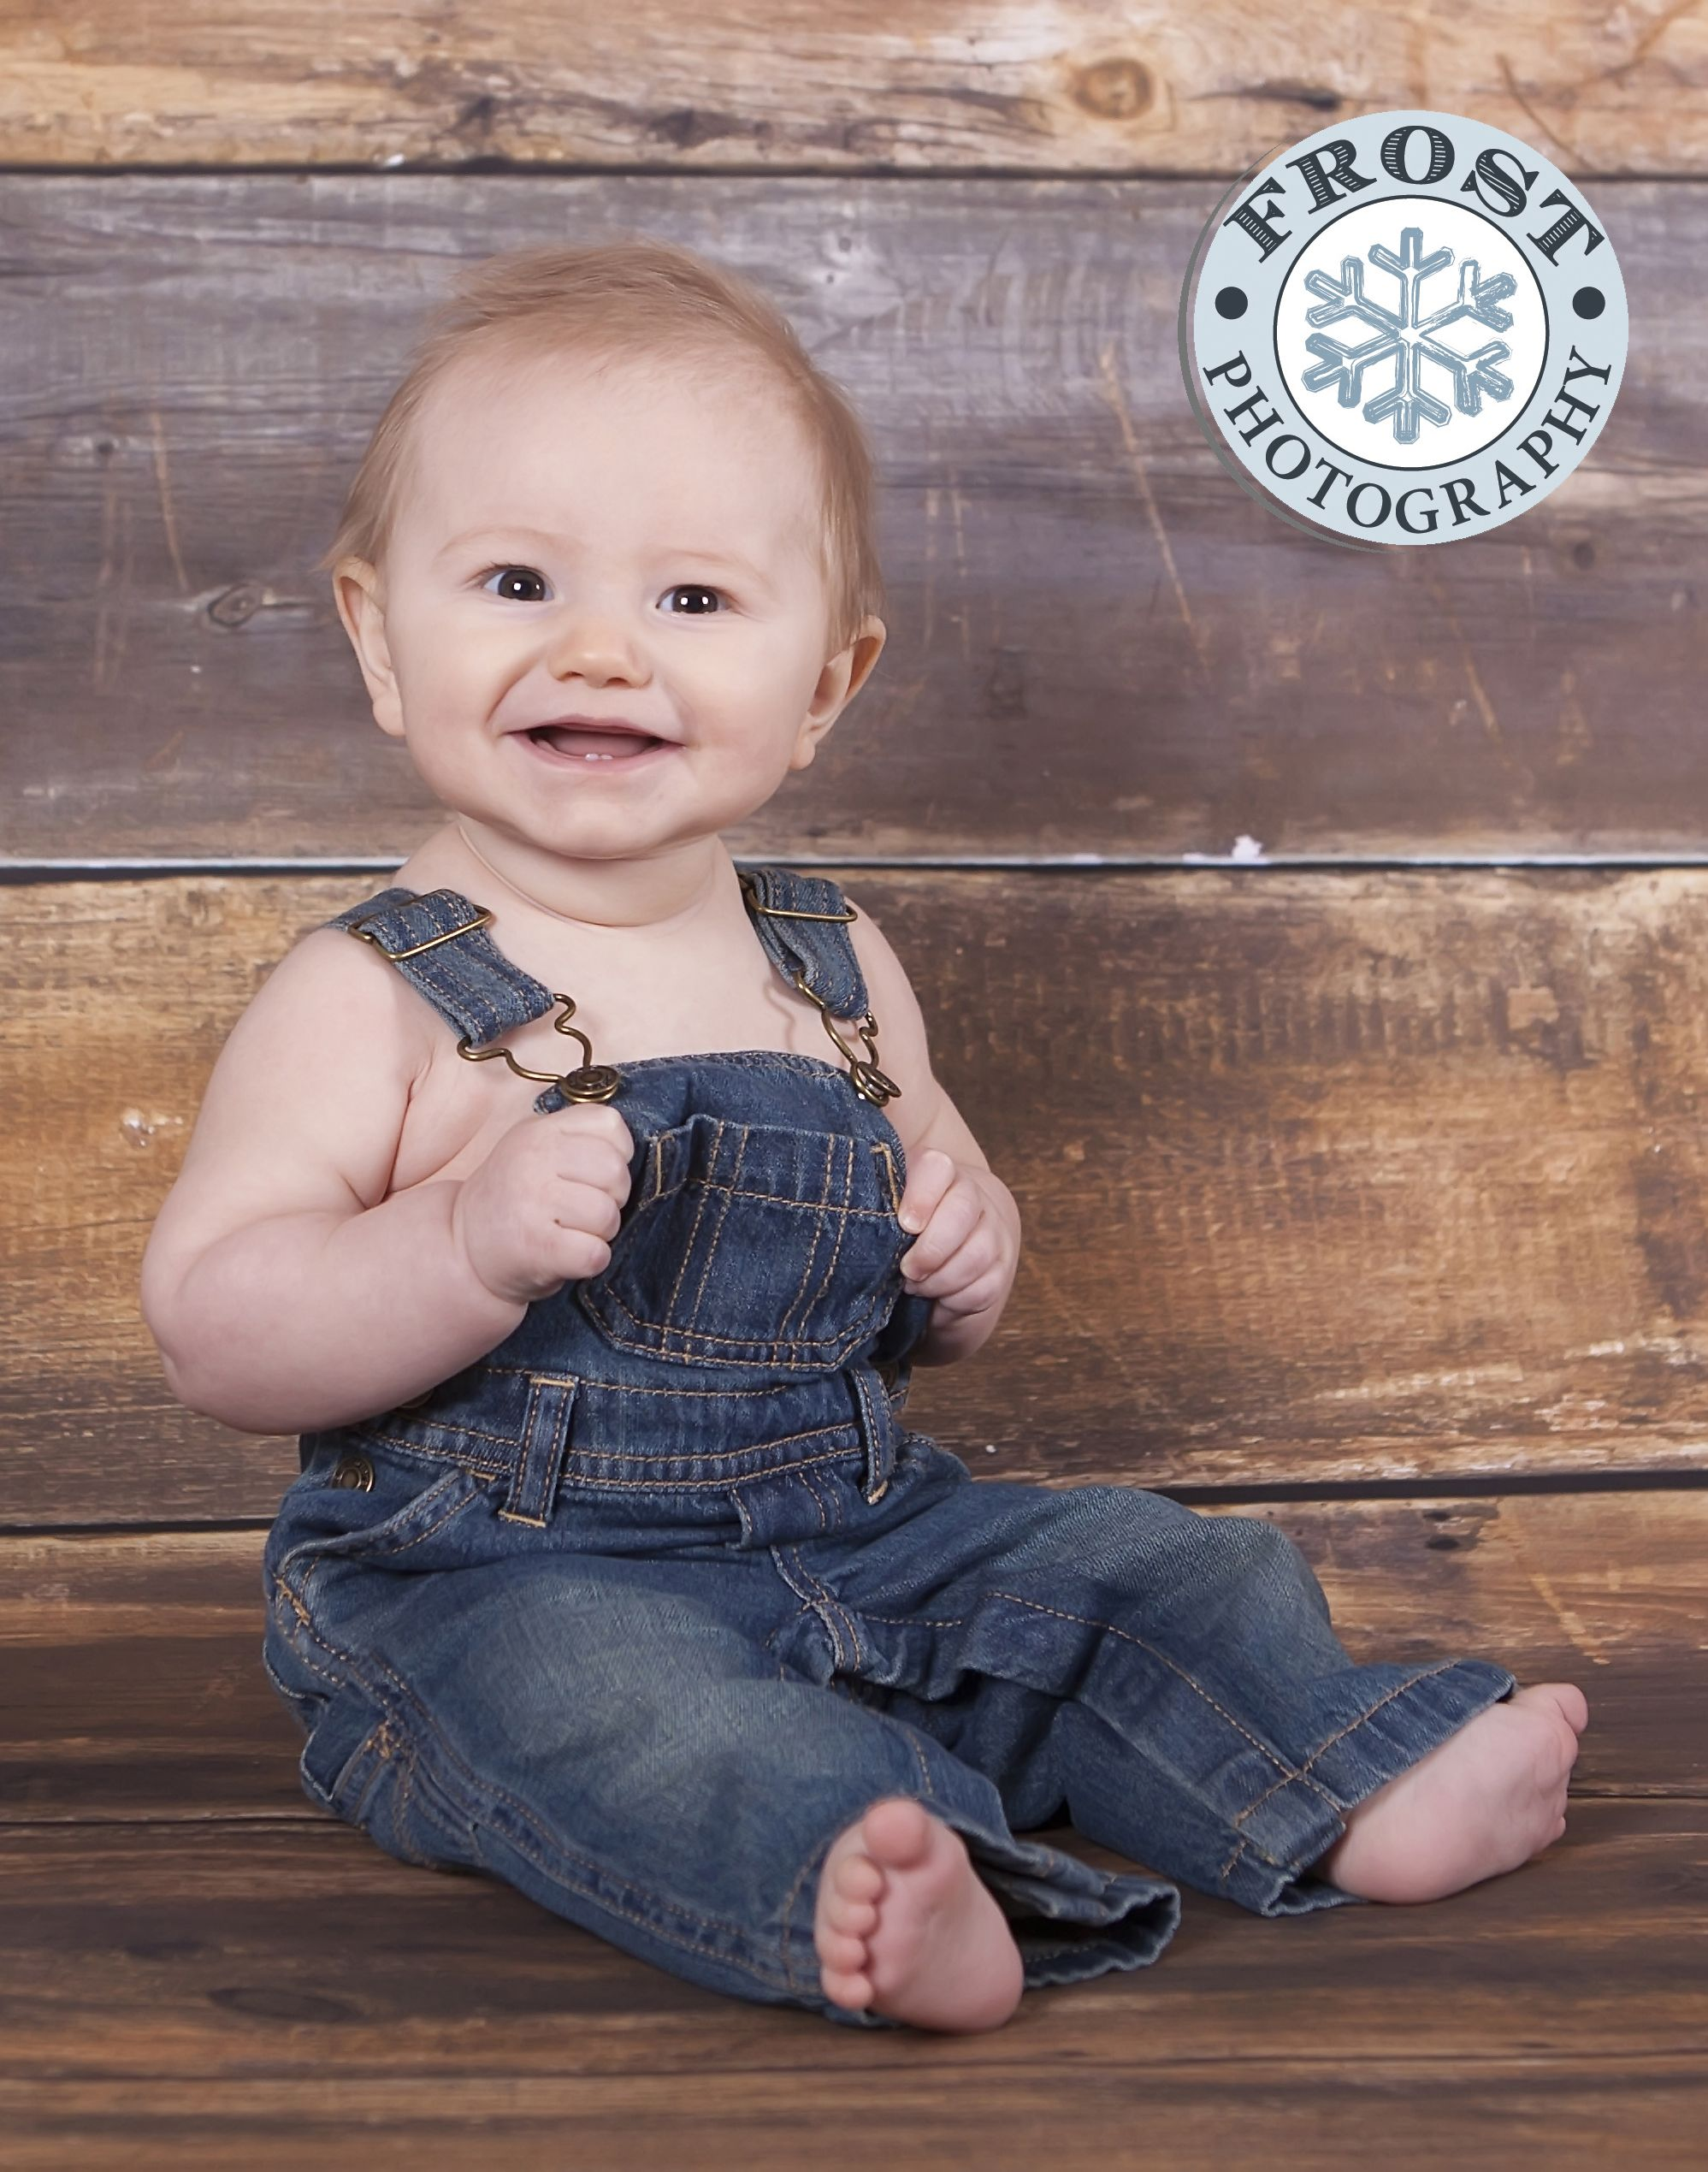 6 month baby boy overalls portrait google search for 4 month baby photo ideas